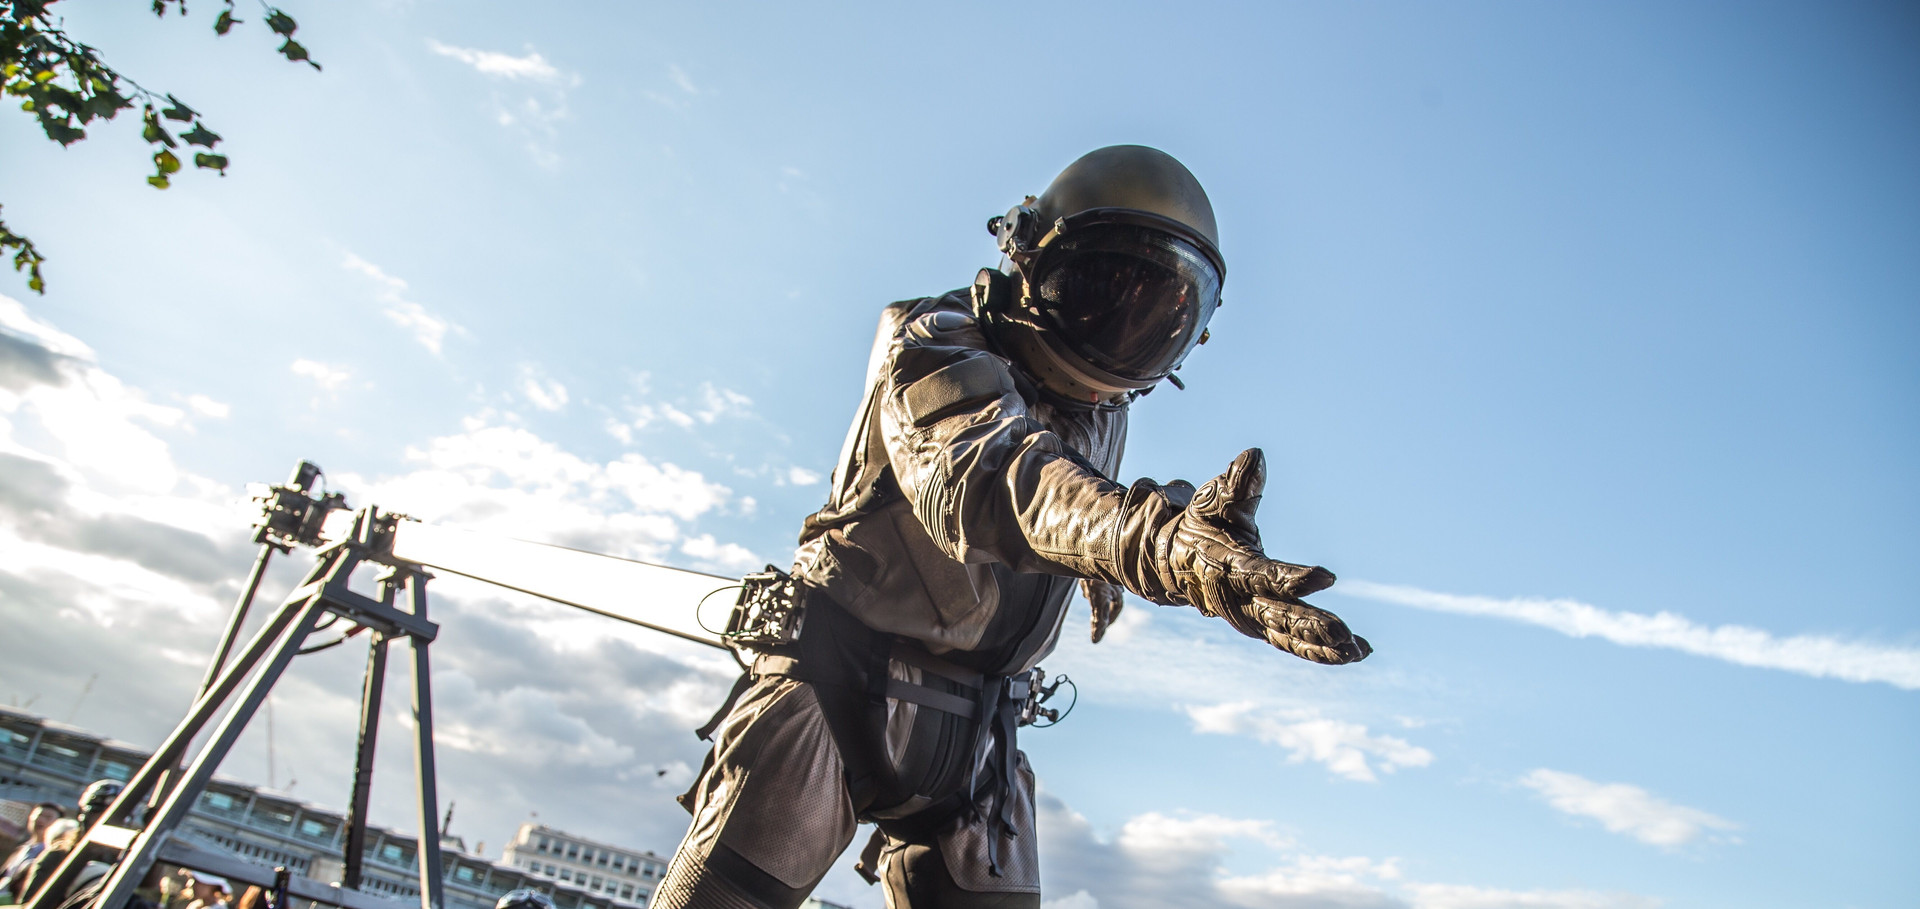 Urban Astronaut by Highly Sprung Performance